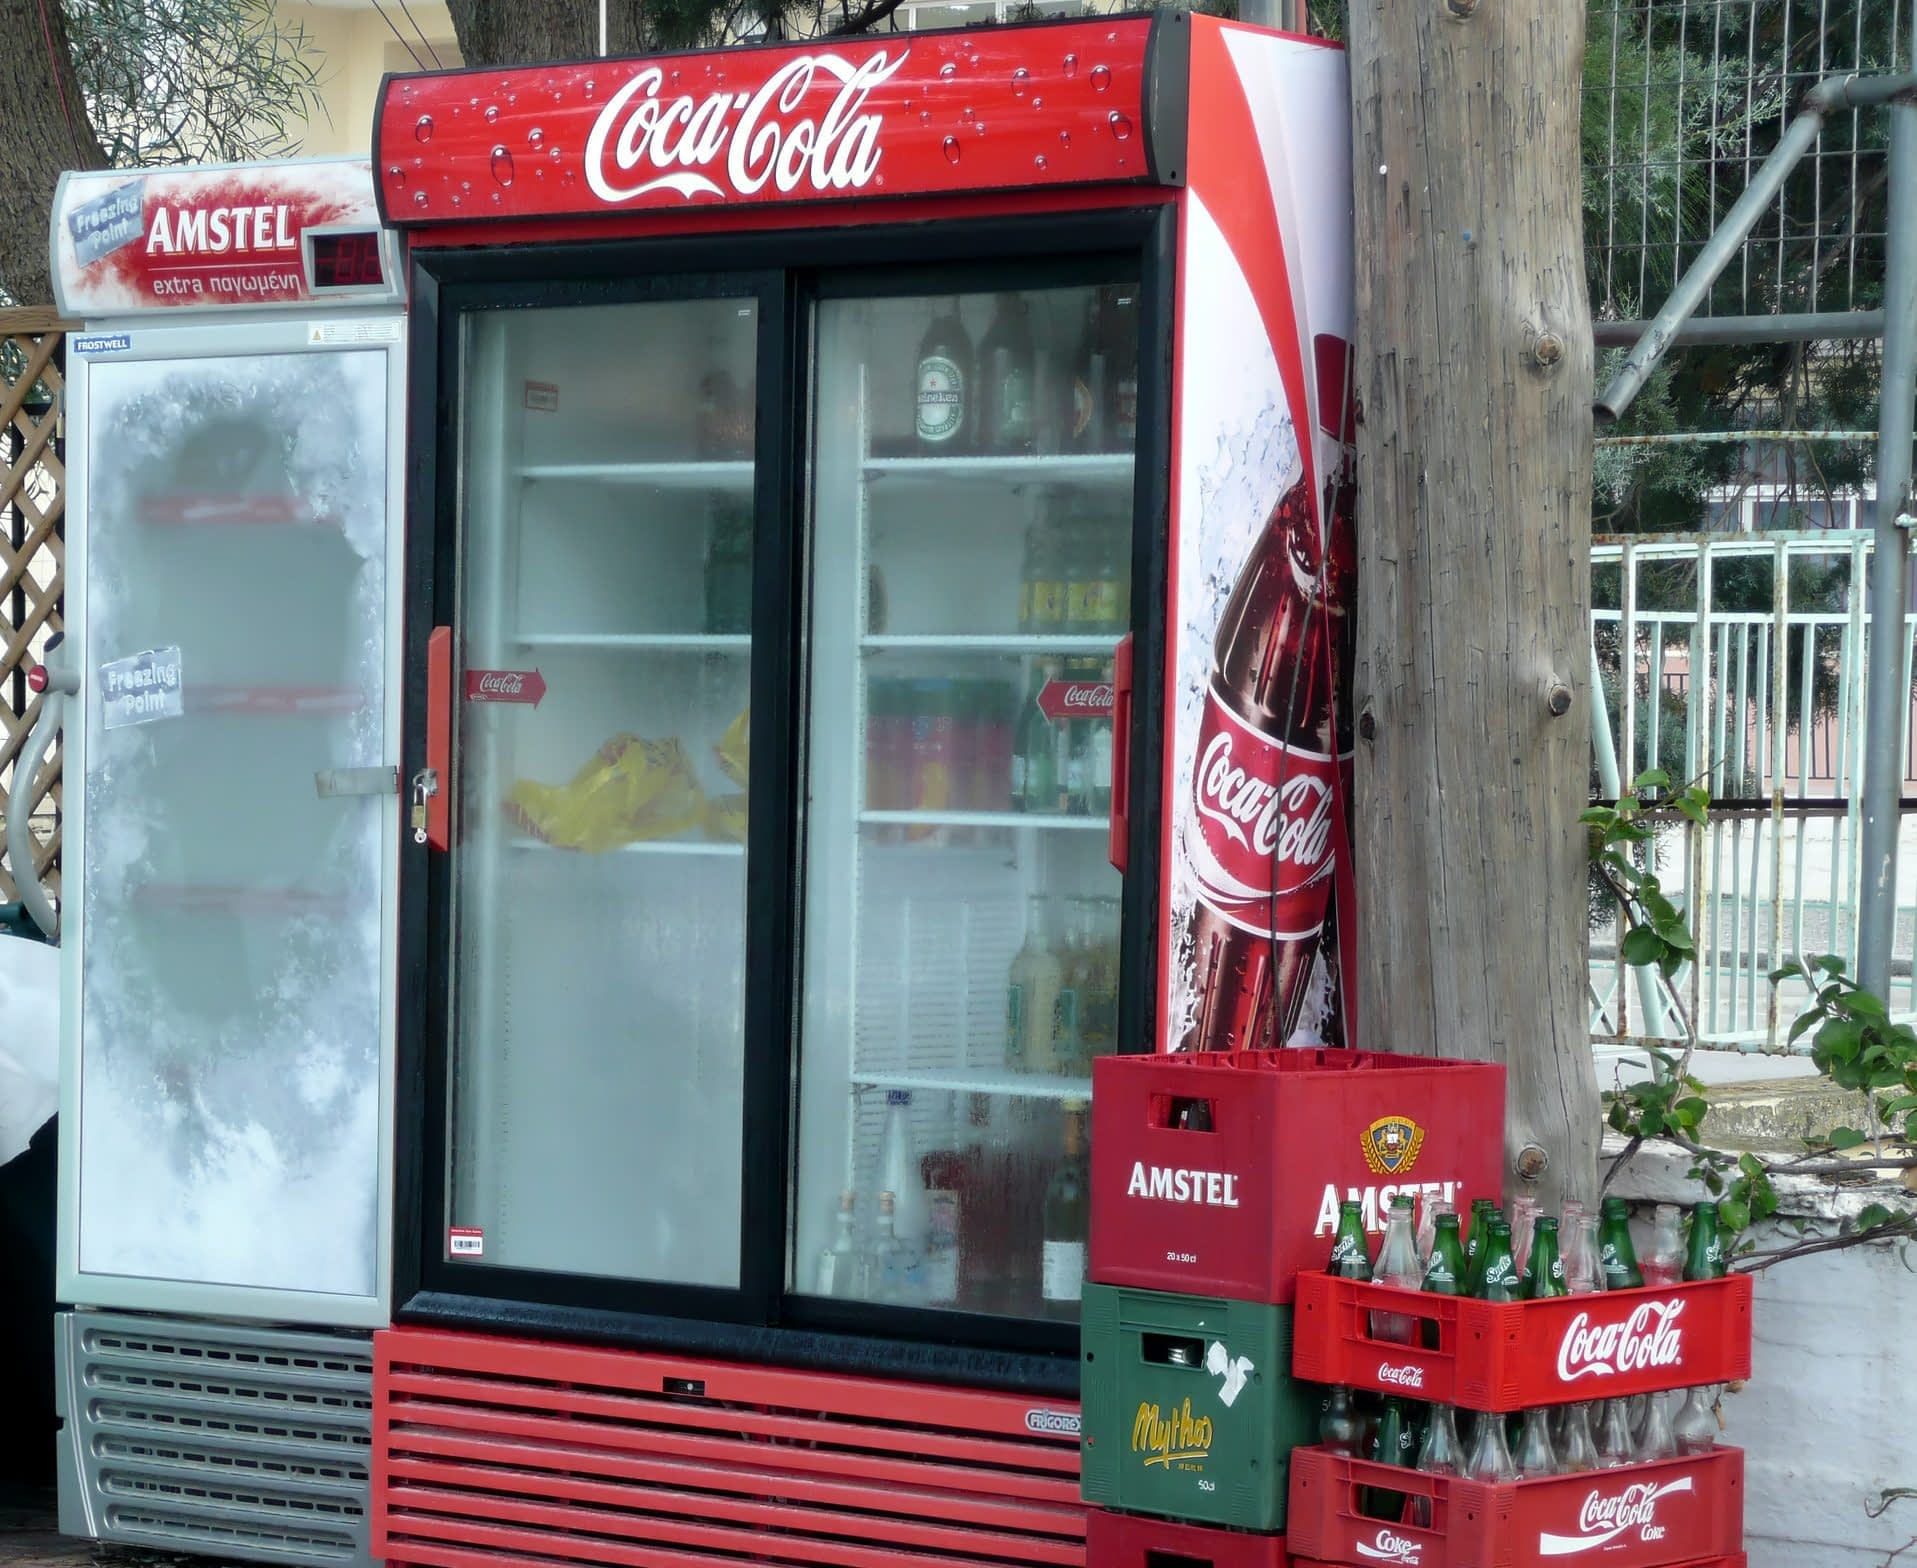 A fridge by Coca Cola